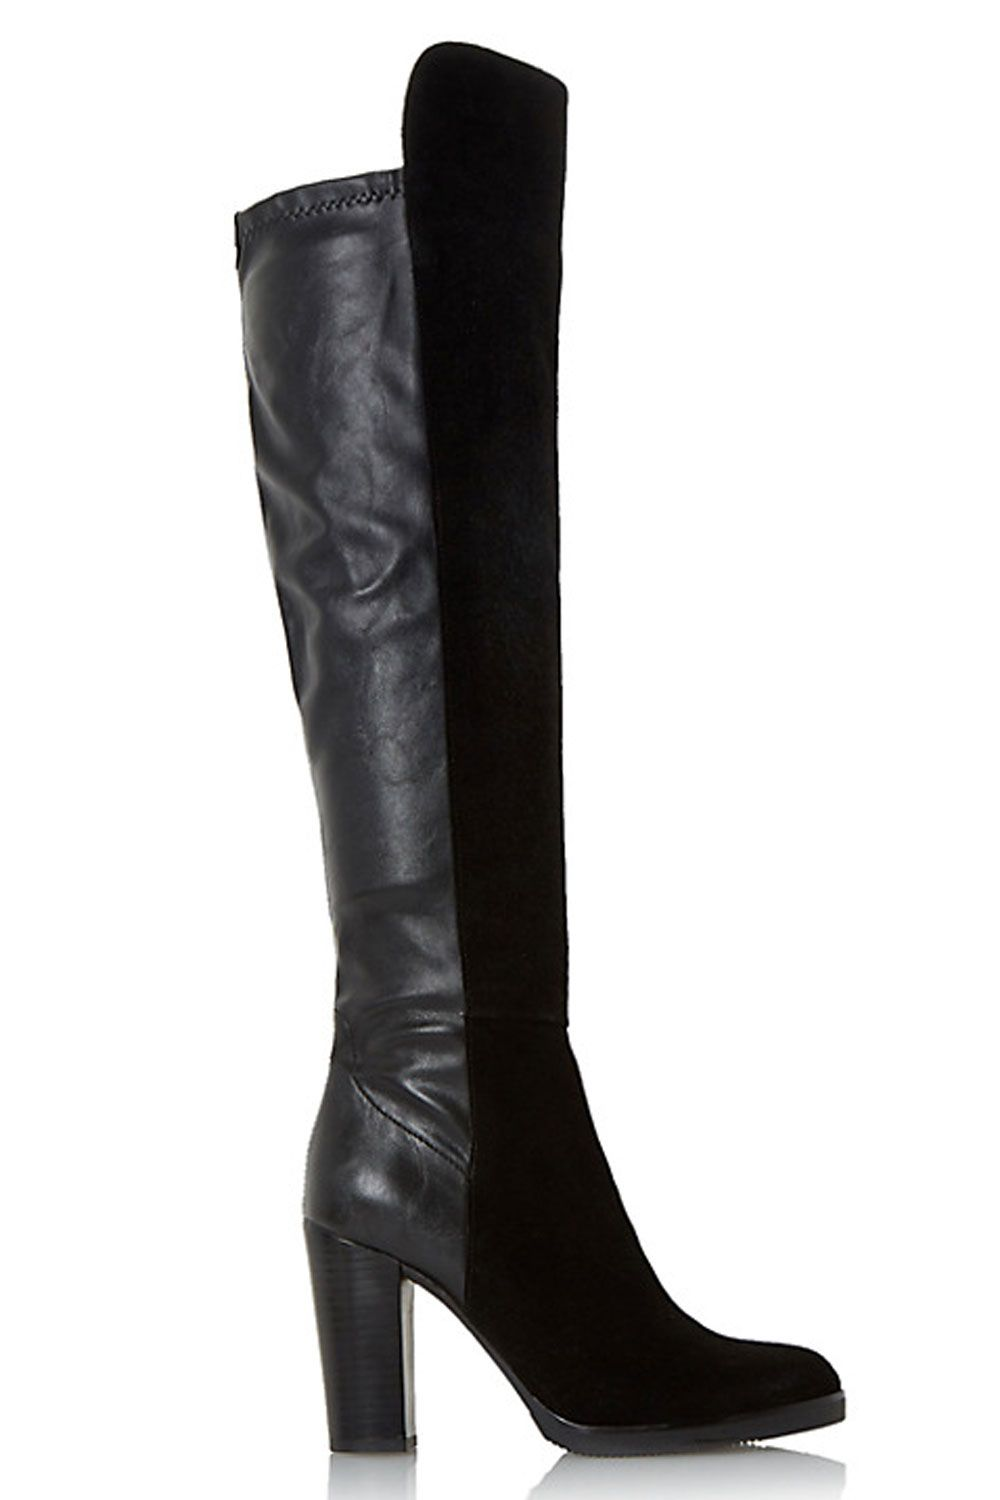 Boots, Knee high boots, Heeled boots